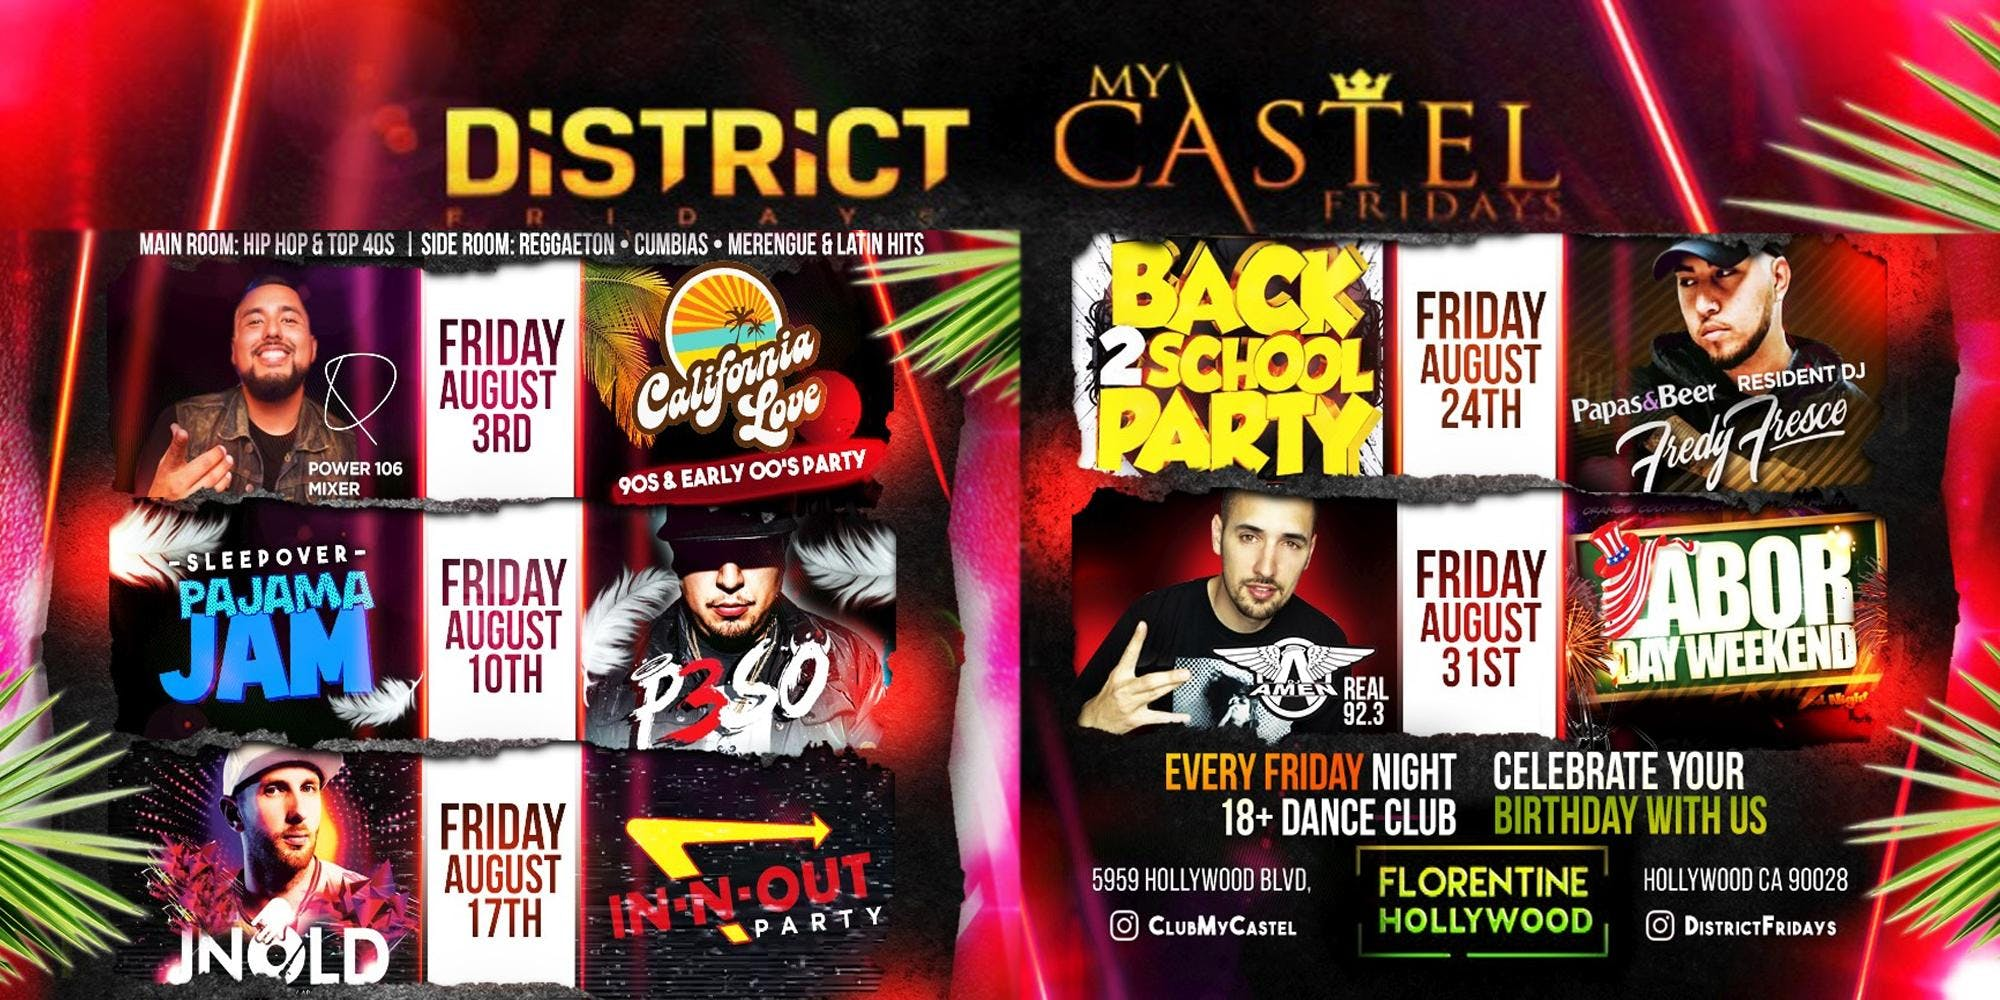 District Fridays: Labor Day Weekend with Real